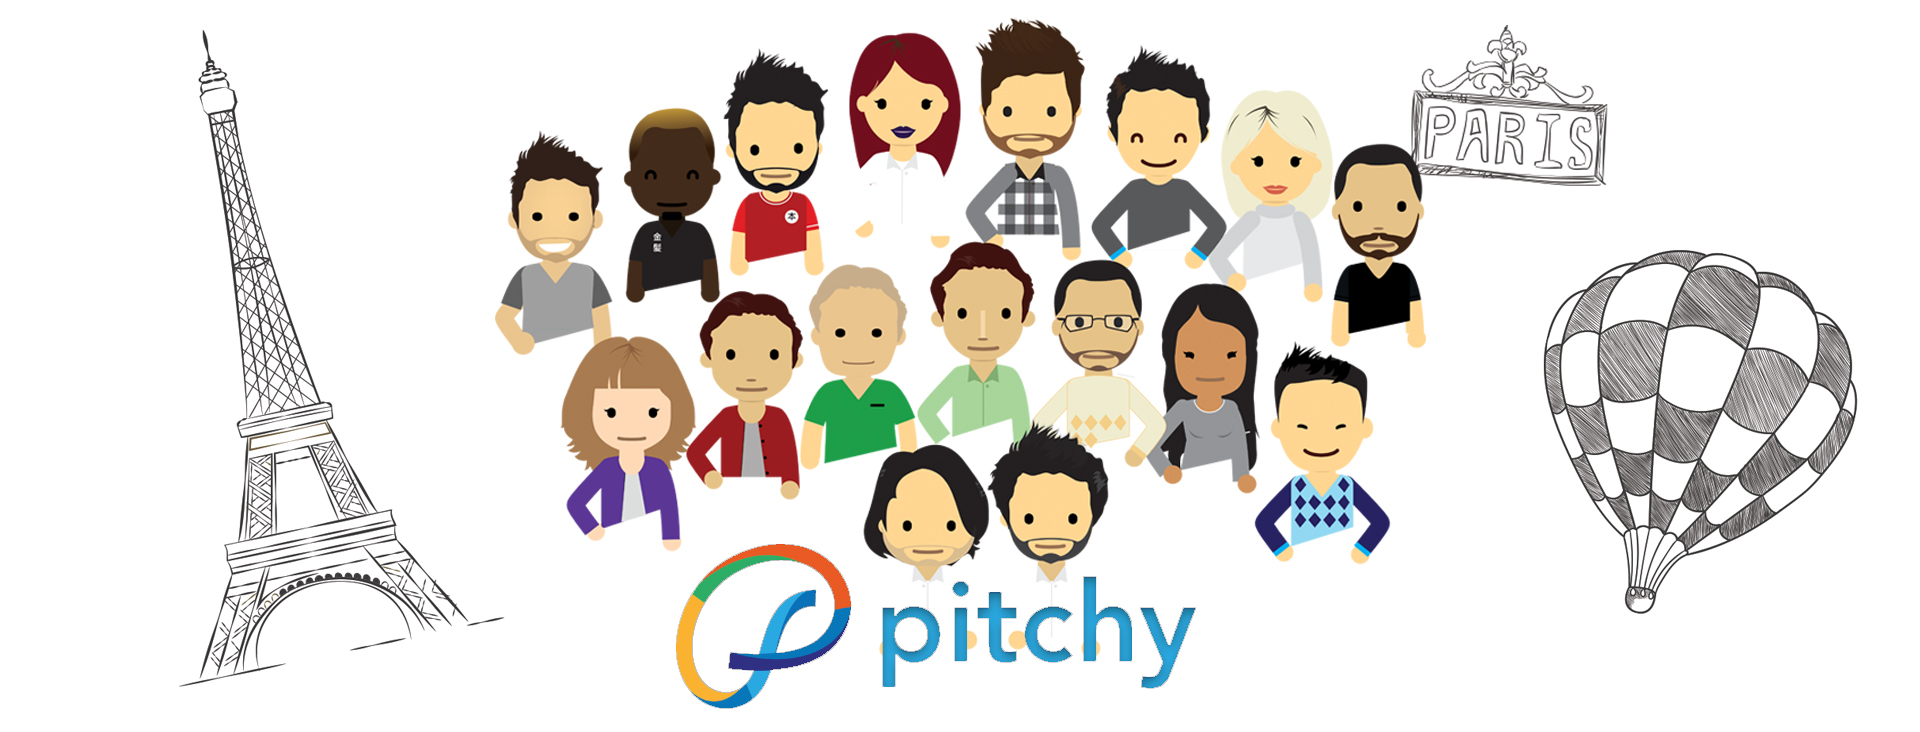 Pitchy - Team BD